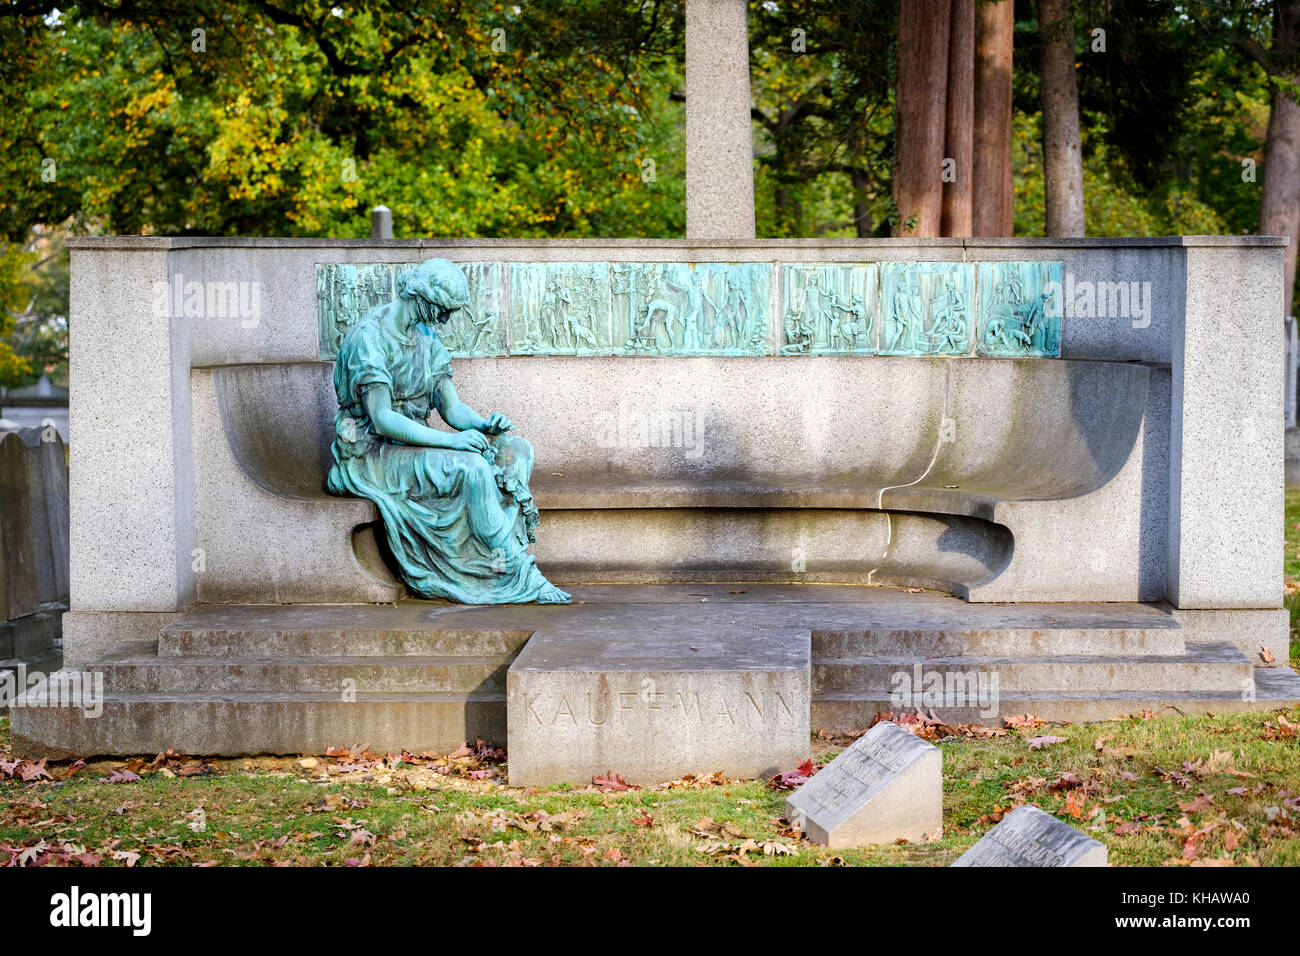 Kauffmann Memorial, Seven Ages of Memory, by William Ordway Partridge, tribute and grave for Samuel Kauffmann, Rock - Stock Image